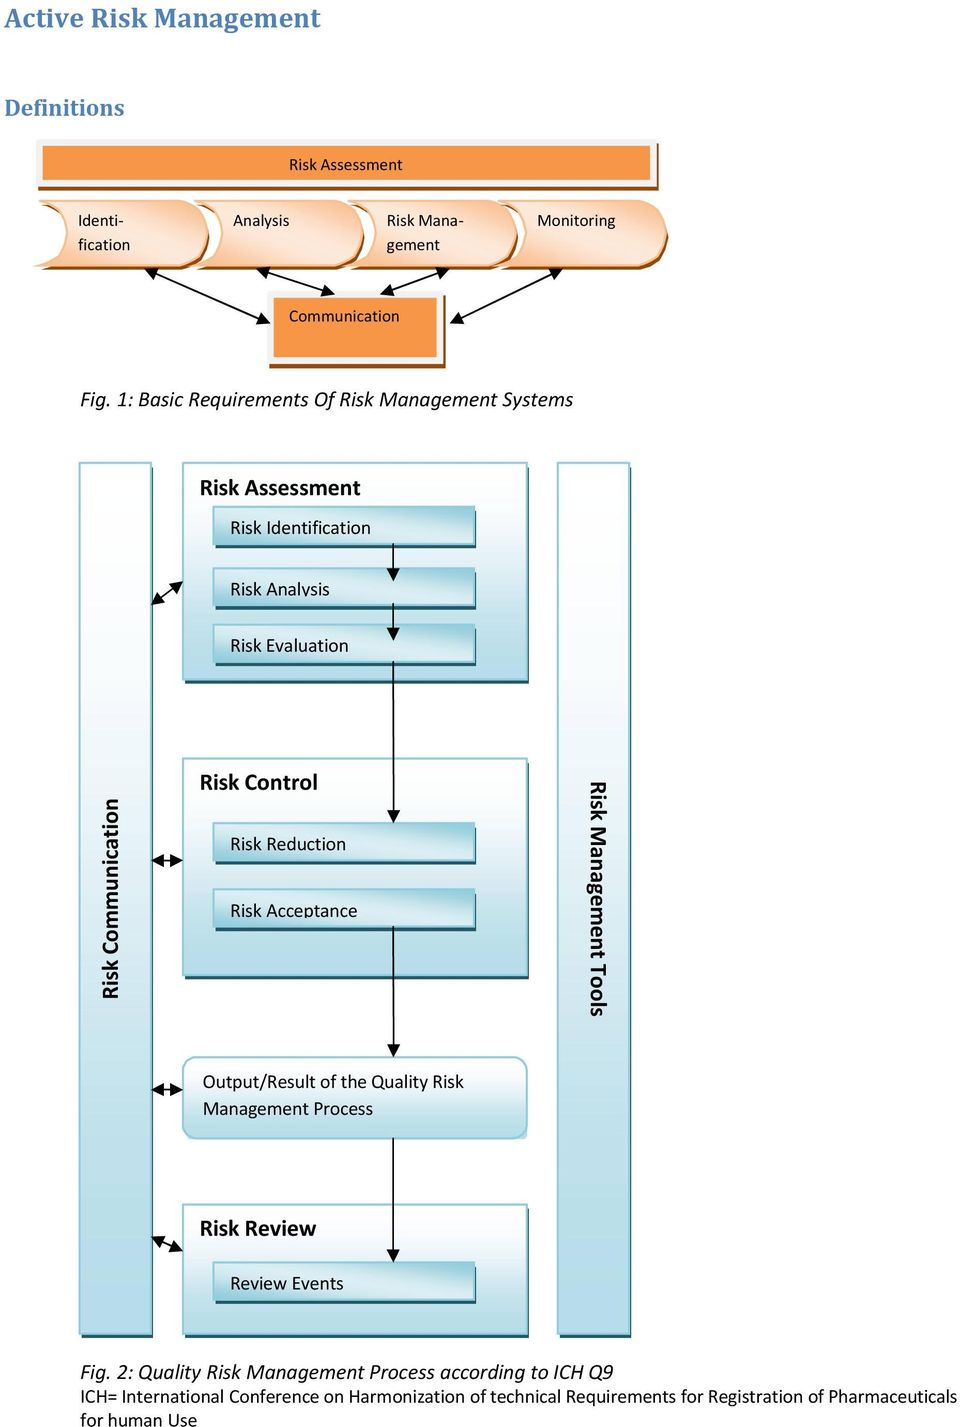 Control Risk Reduction Risk Acceptance Risk Management Tools Output/Result of the Quality Risk Management Process Risk Review Review Events Fig.